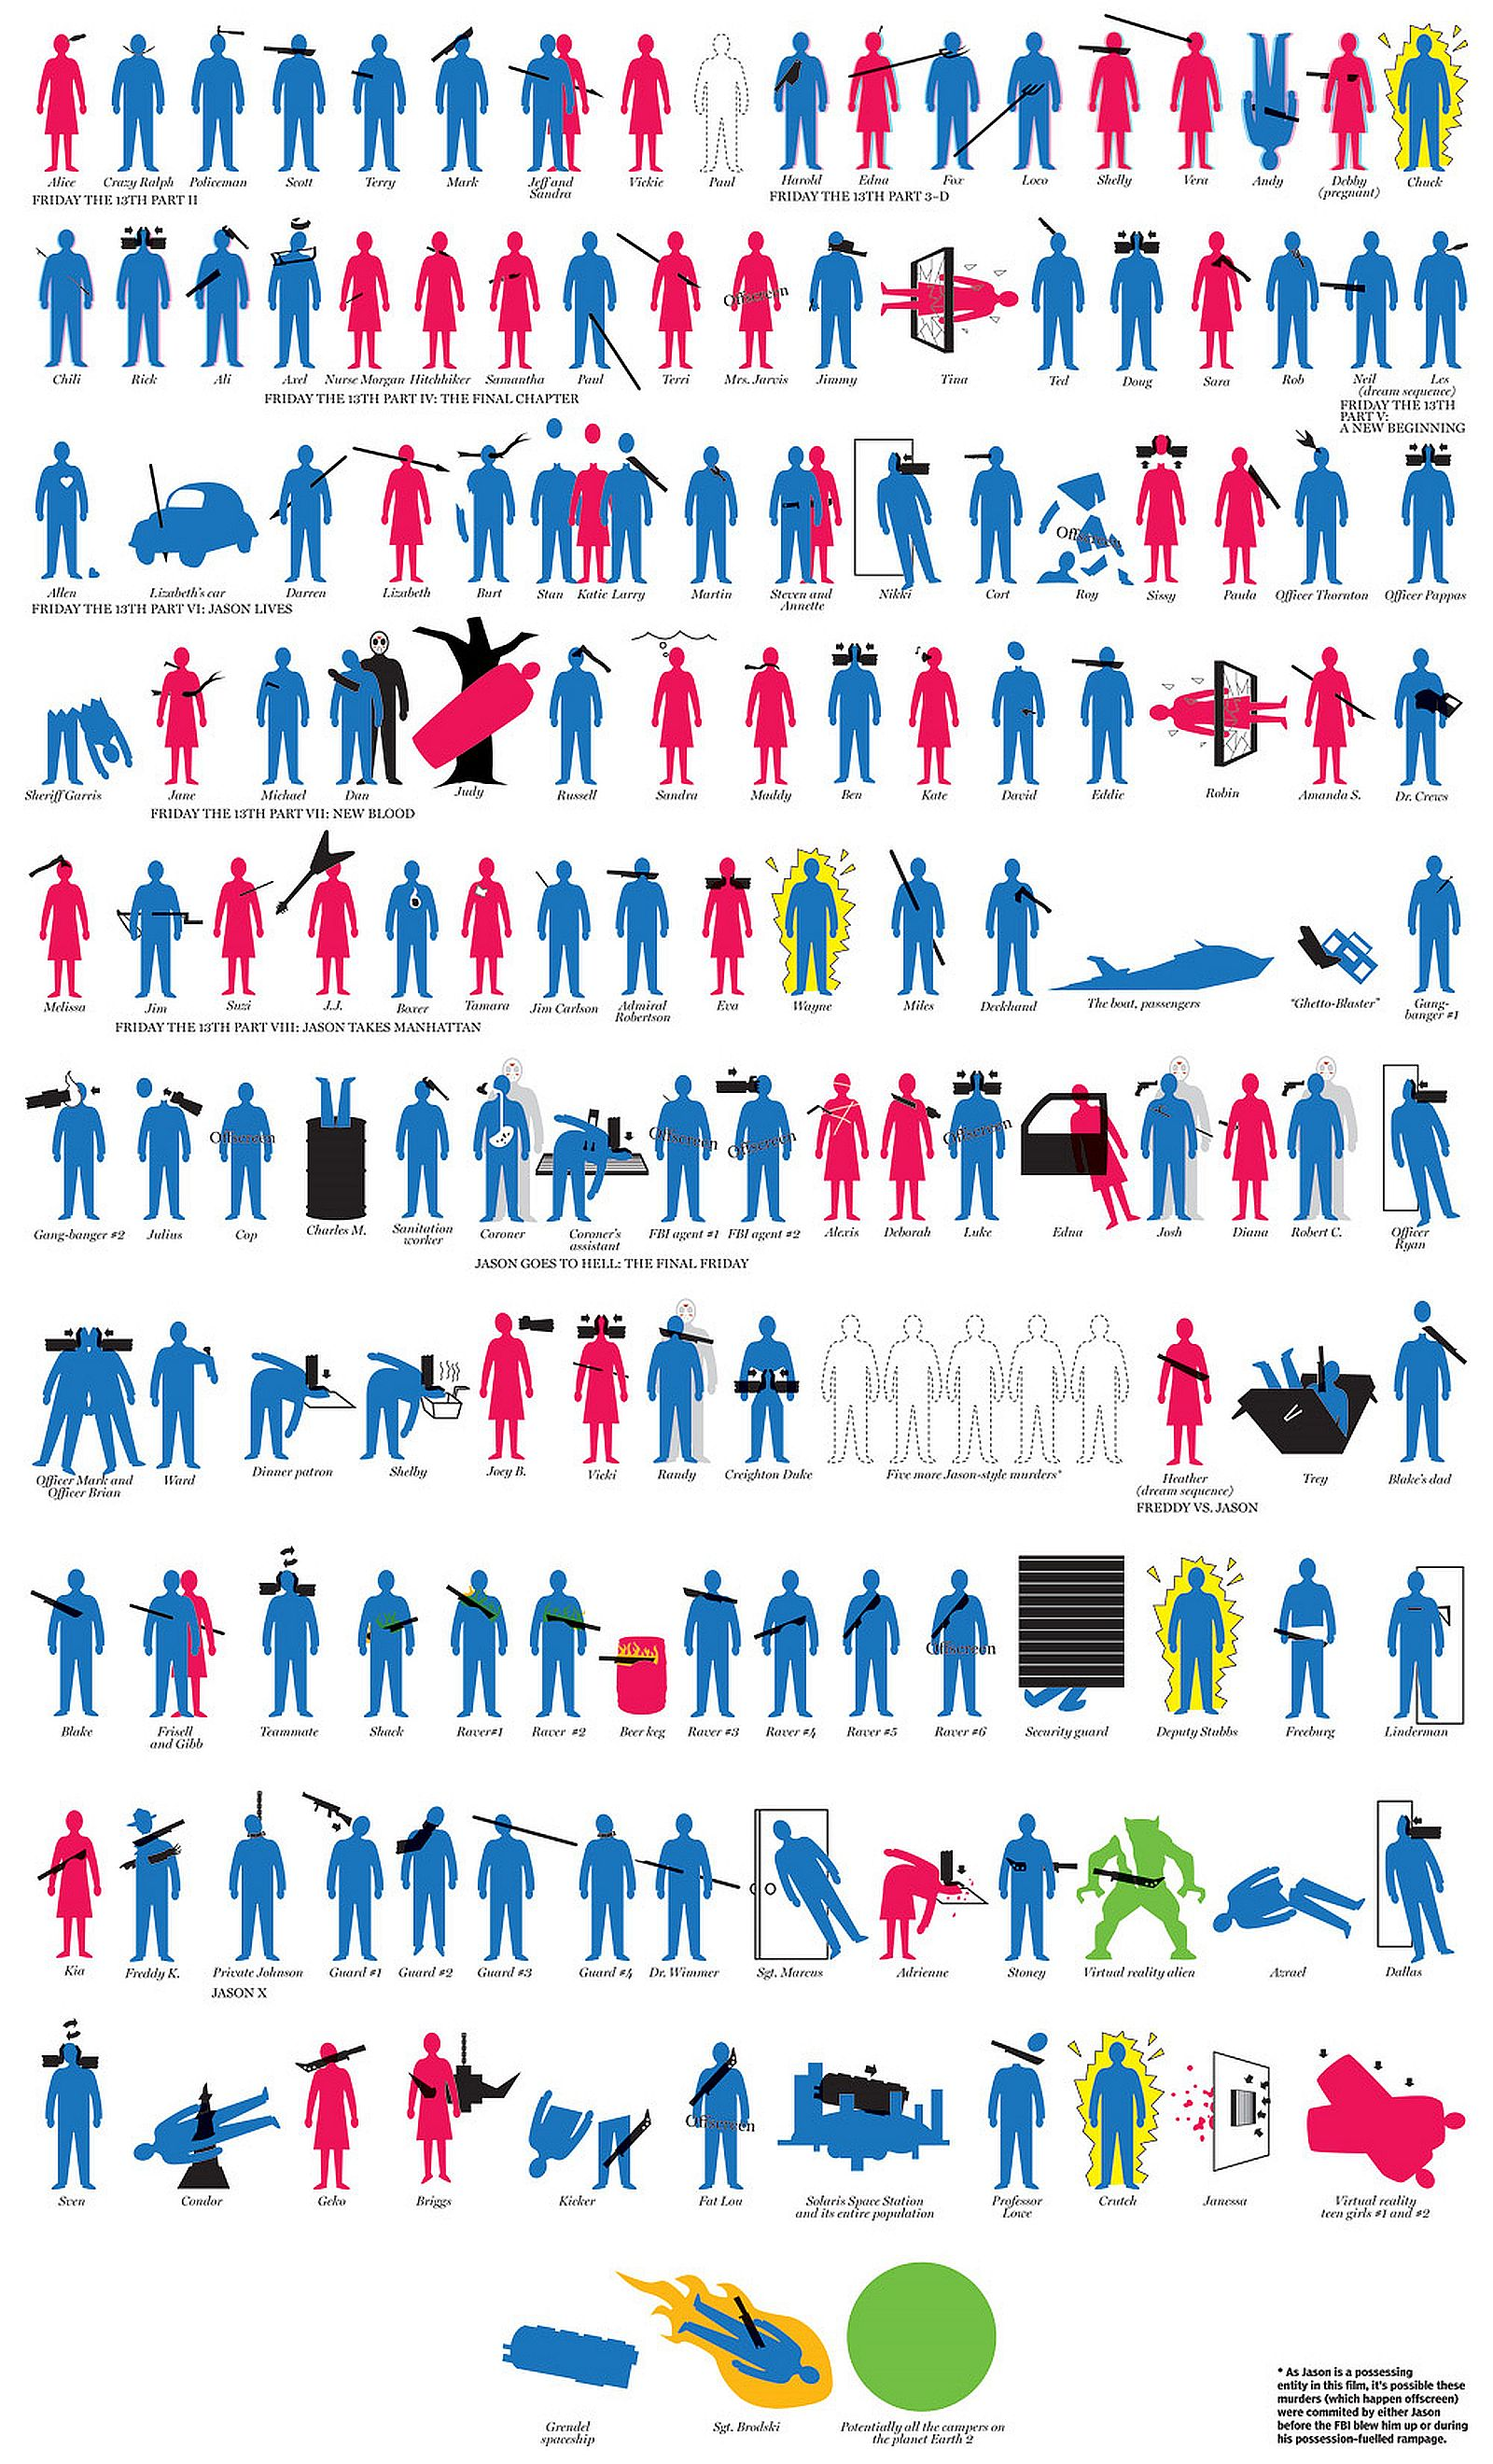 Enjoy 'Friday the 13th' with this Awesome Infographic